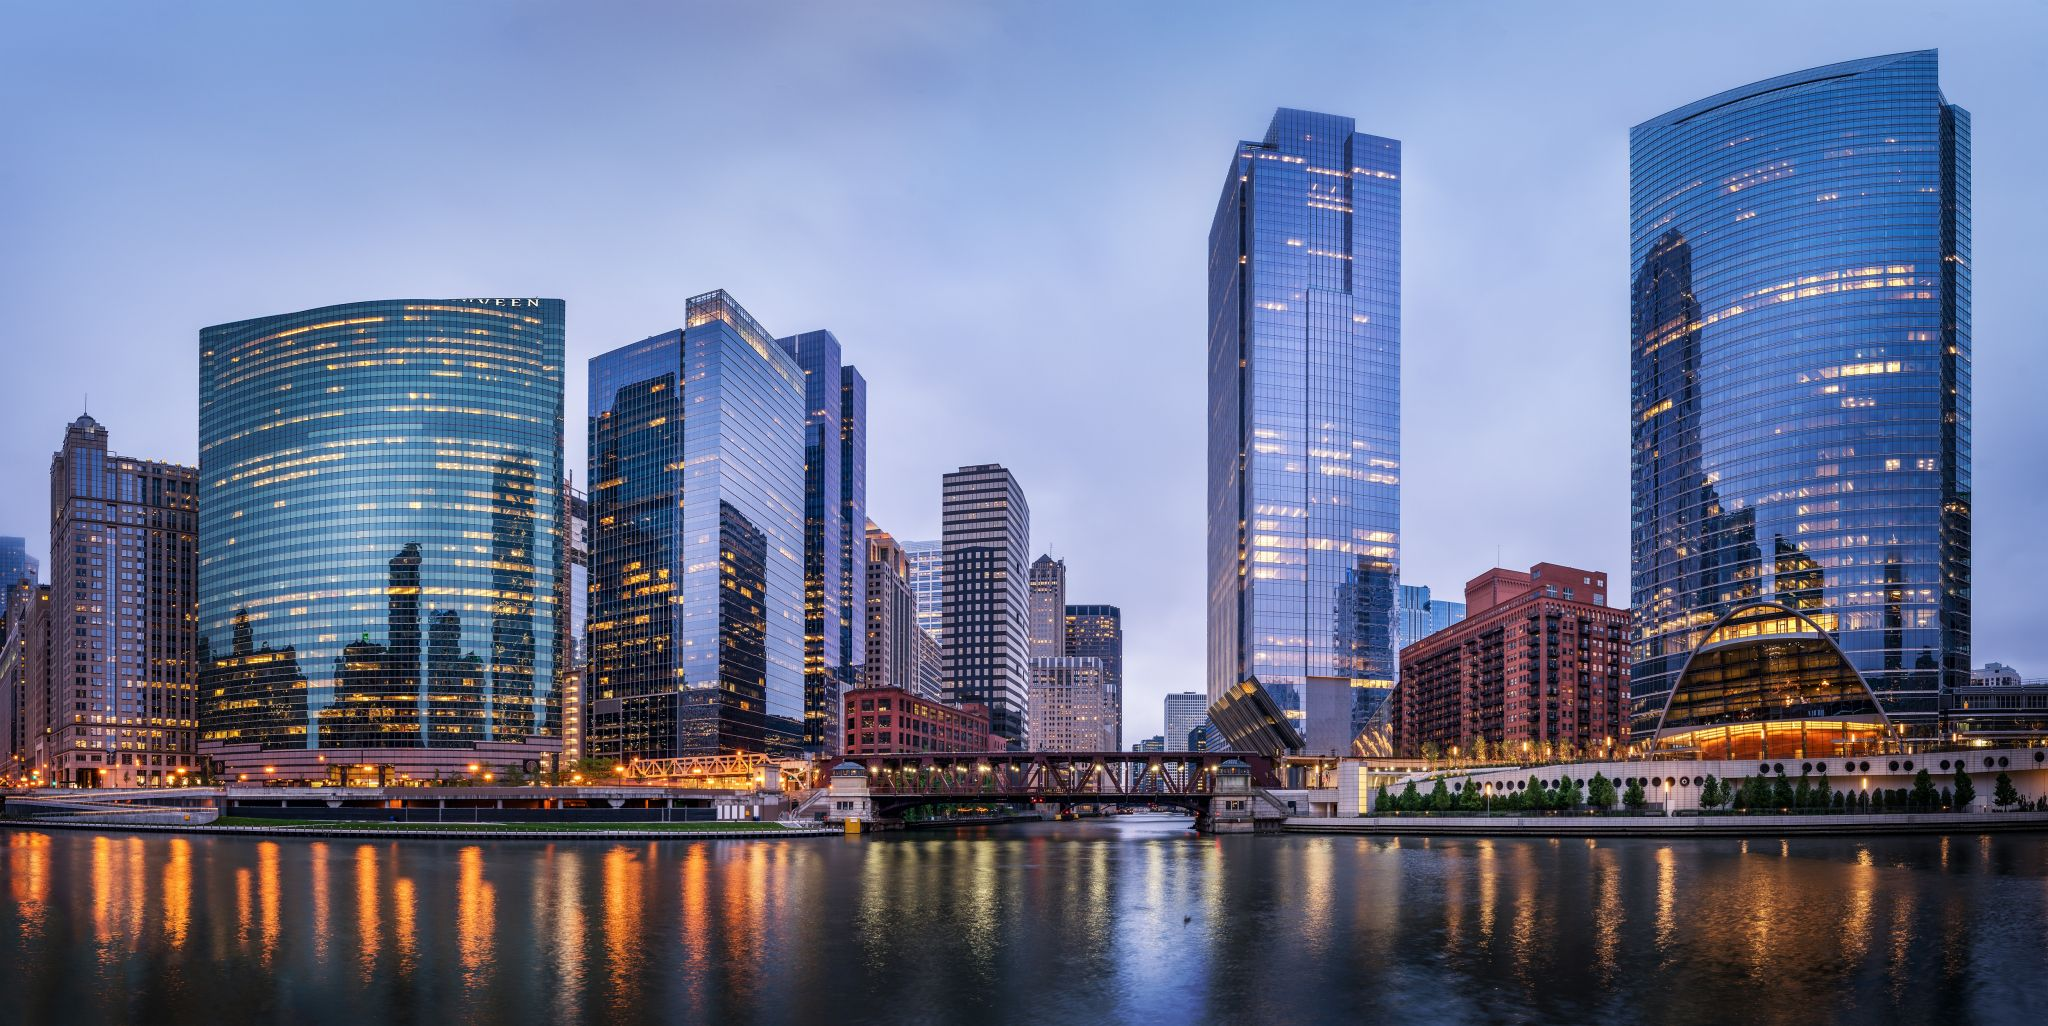 Chicago River Junction, USA